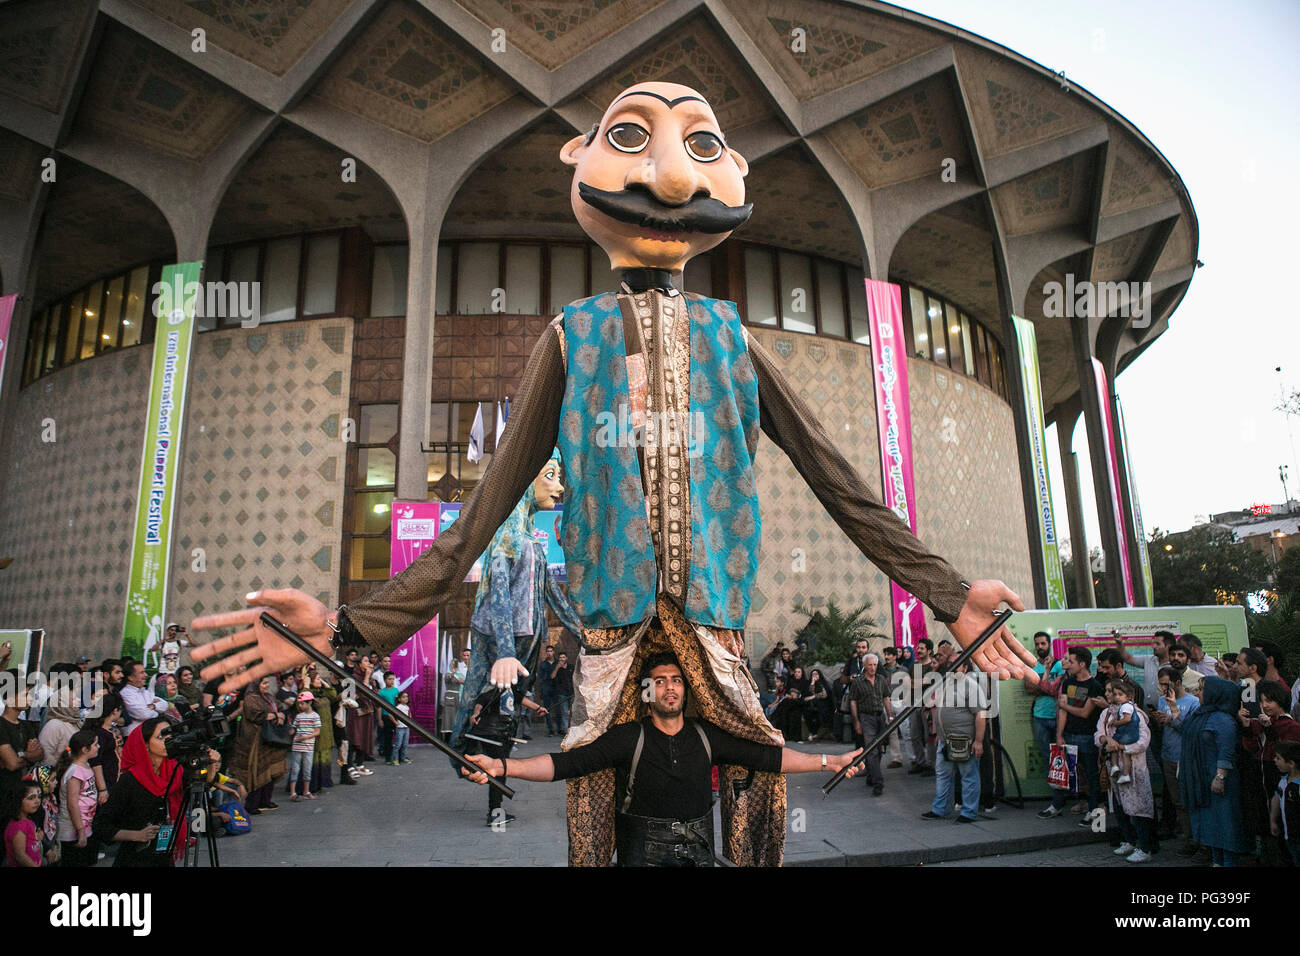 Tehran, Iran. 23rd Aug, 2018. An actor performs during the 17th Tehran International Puppet Theater Festival in downtown Tehran, capital of Iran, on Aug. 23, 2018. The six-day-long festival opened here on Wednesday. Credit: Ahmad Halabisaz/Xinhua/Alamy Live News - Stock Image